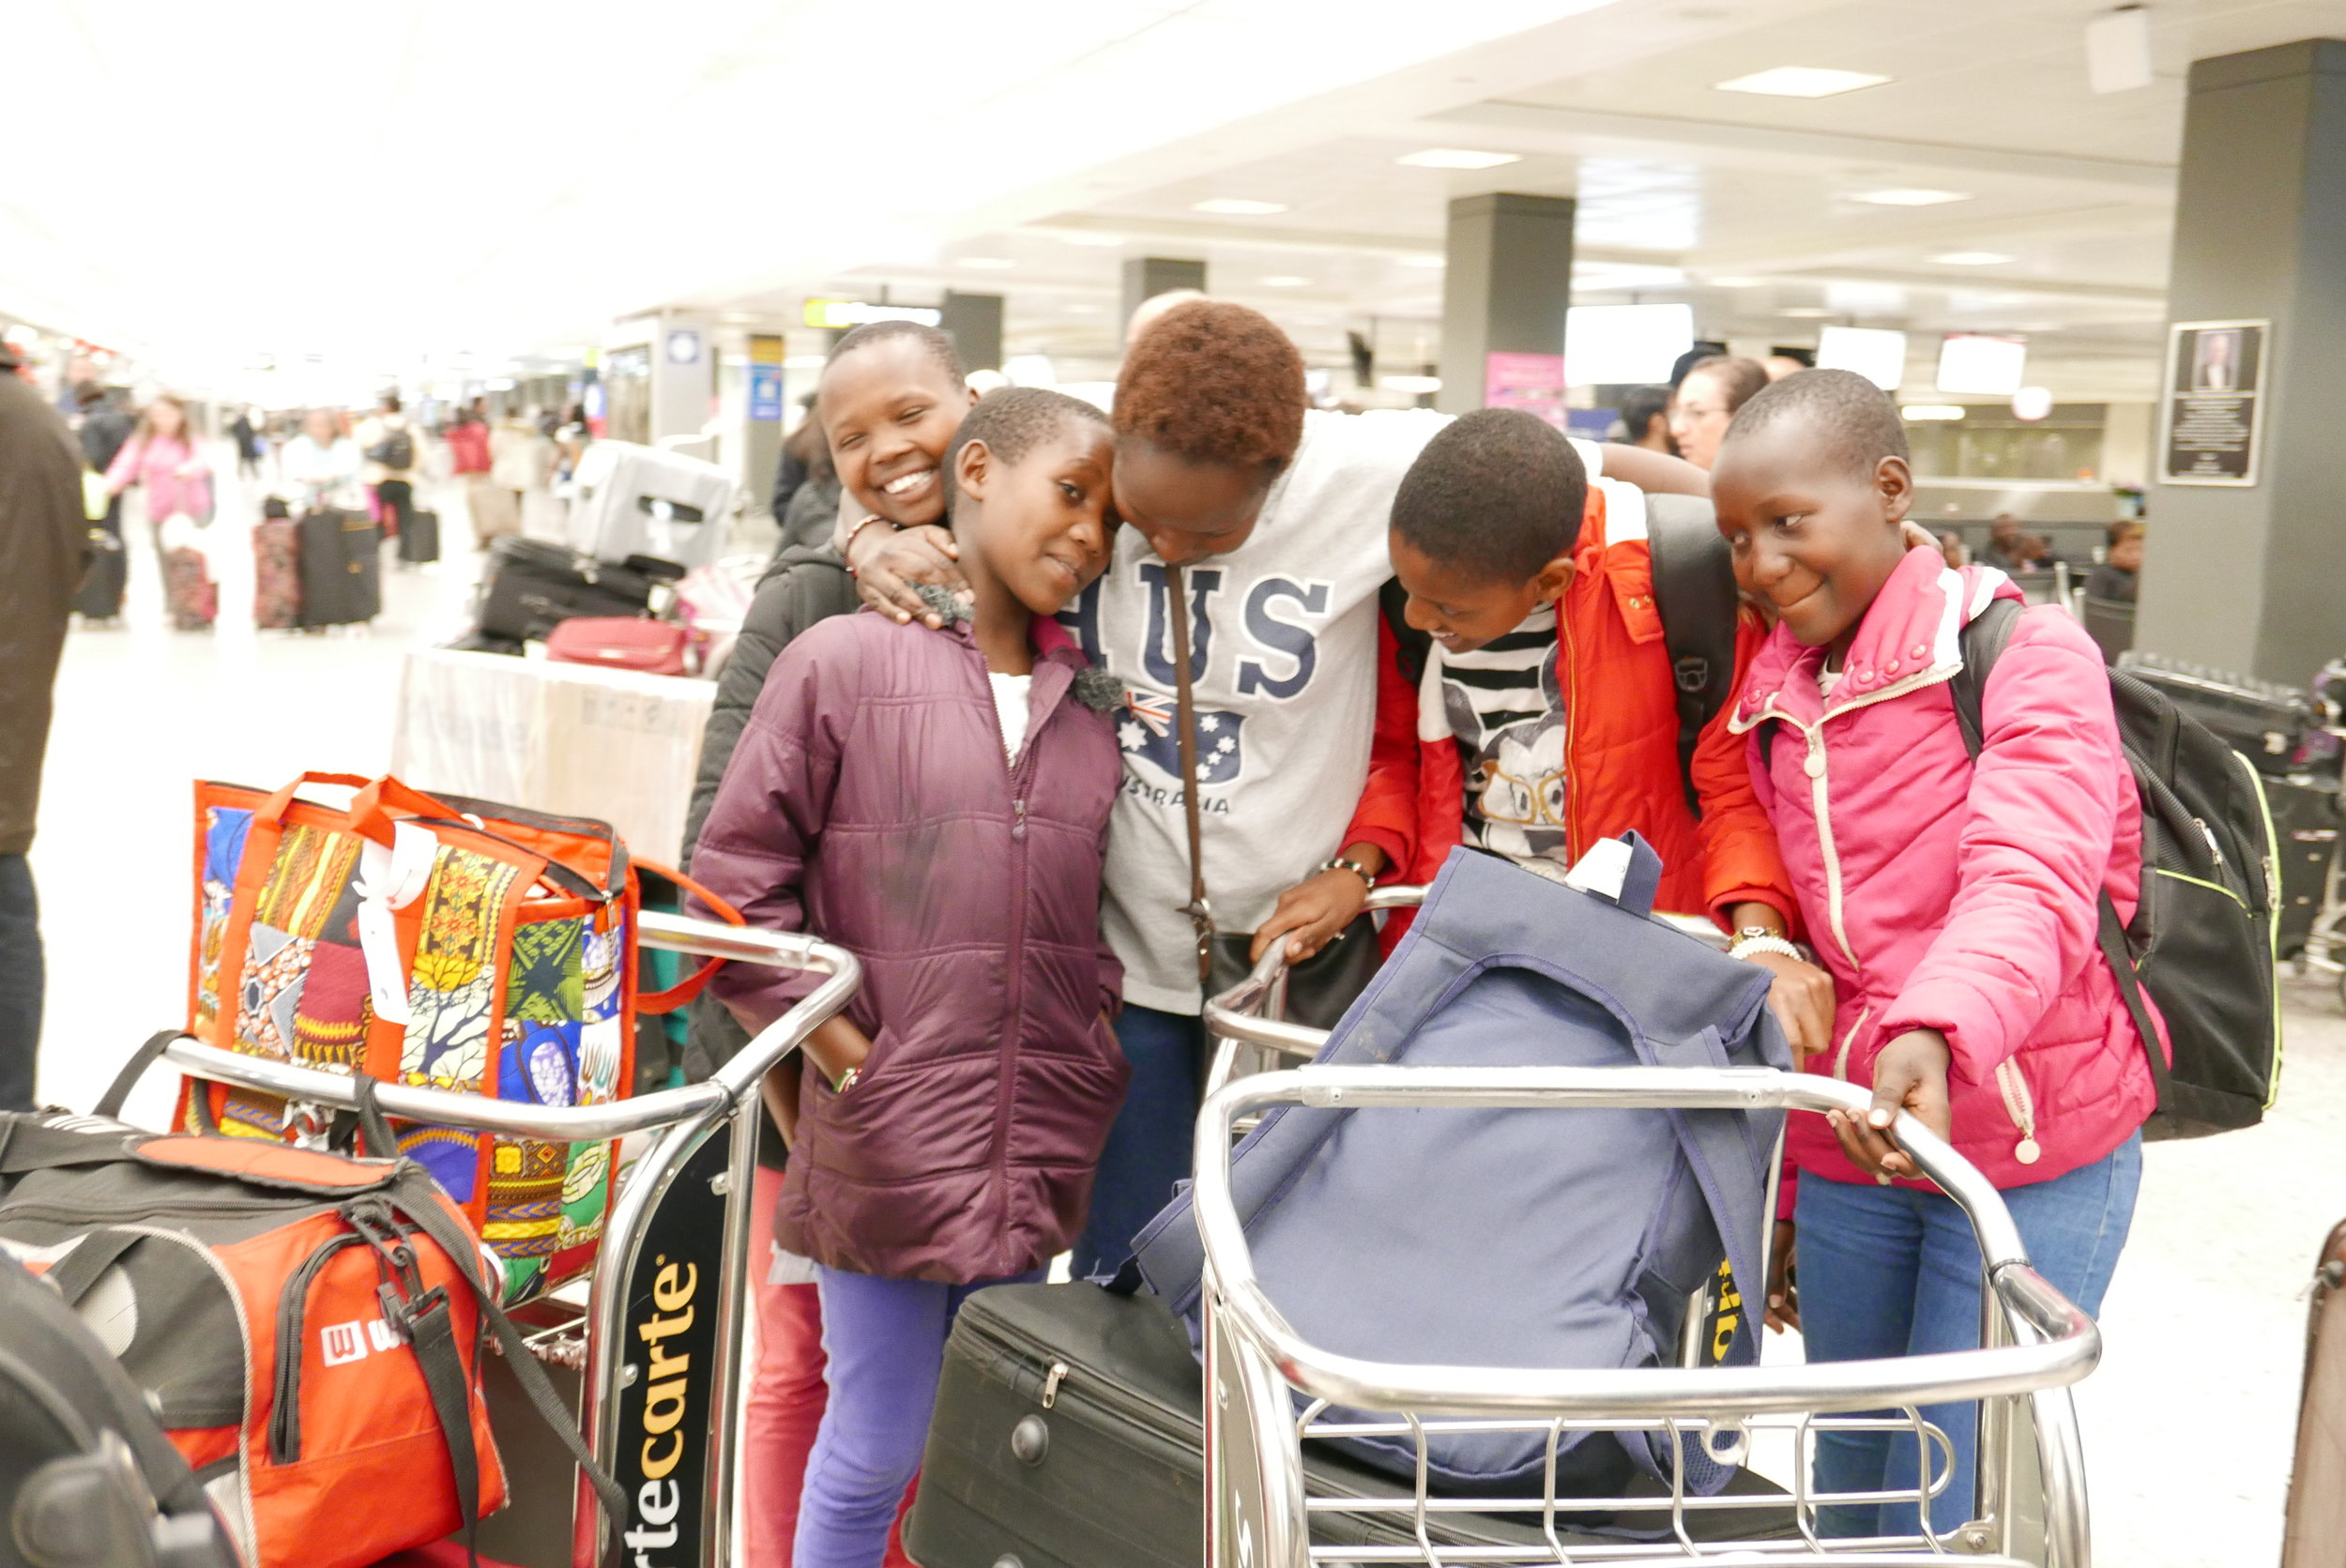 The girls are reunited with Kakenya at the Dulles International Airport in Virginia.